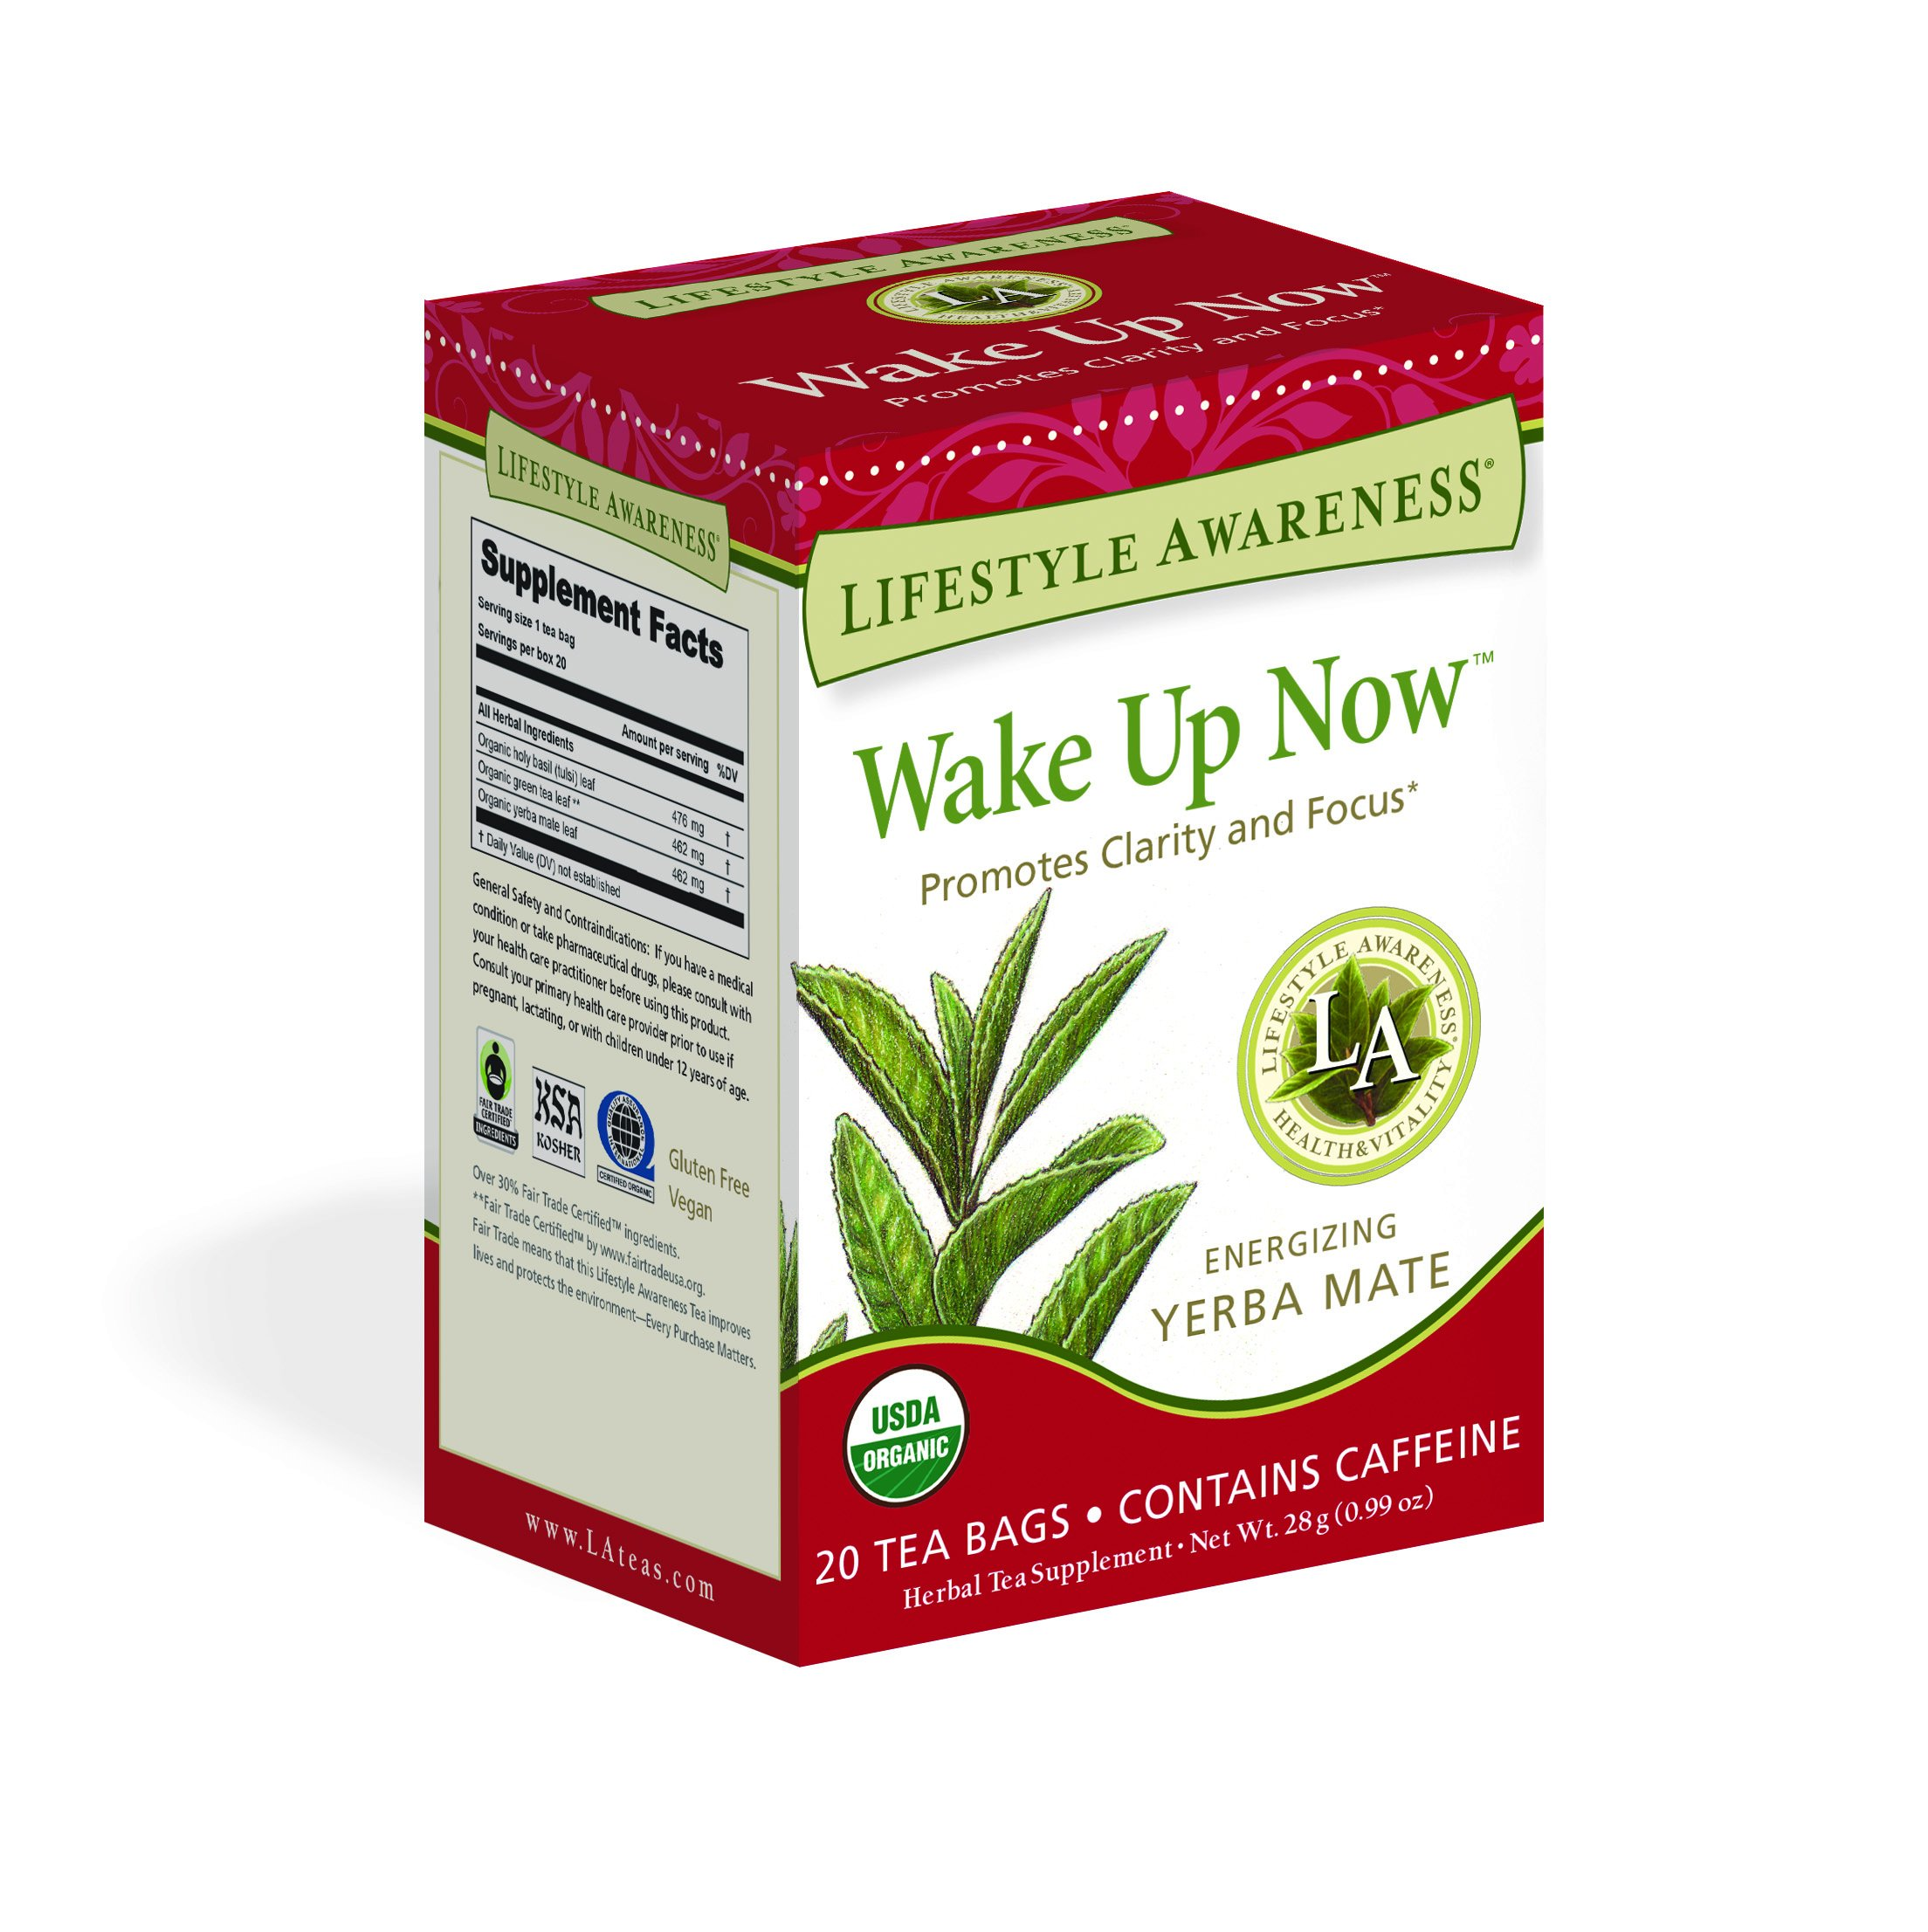 Lifestyle Awareness Wake Up Now Tea with Energizing Yerba Mate, Contains Caffeine, 20 Tea Bags, Pack of 6 by Lifestyle Awareness